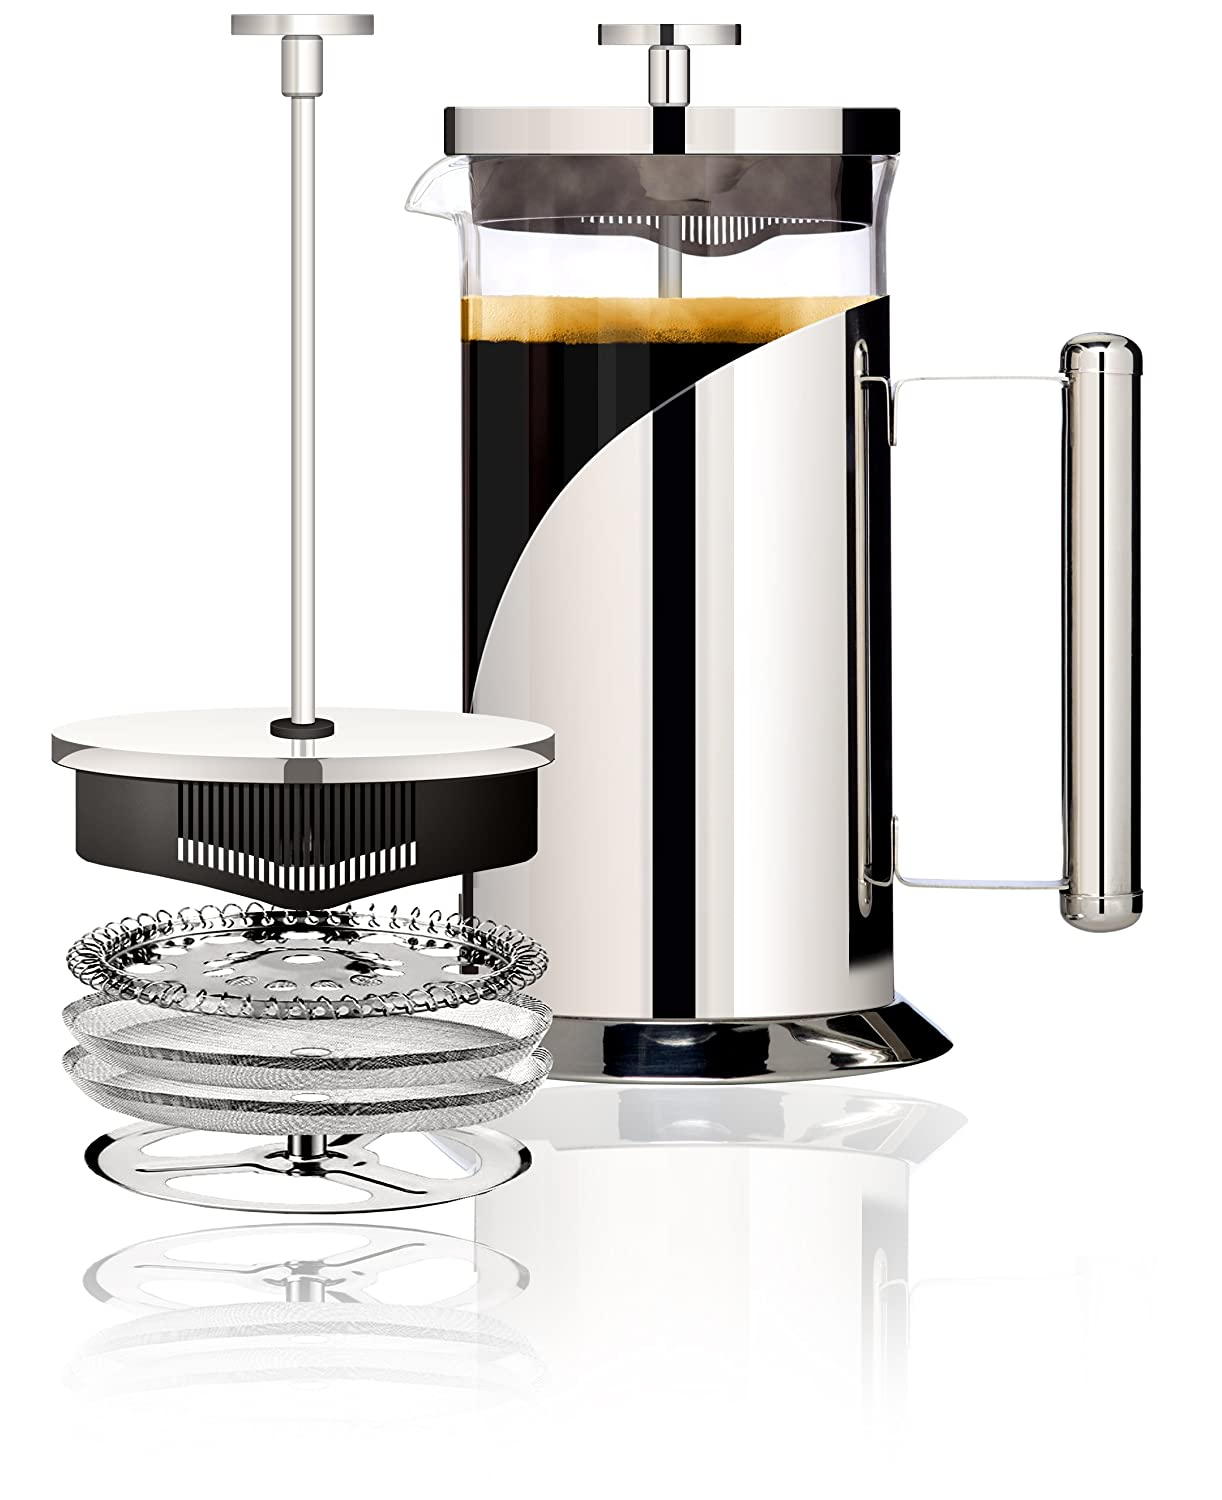 Bed bath beyond french press - Amazon Com Cafe Du Chateau 34oz French Press Coffee Maker 4 Level Filtration System 304 Grade Stainless Steel Heat Resistant Borosilicate Glass Kitchen